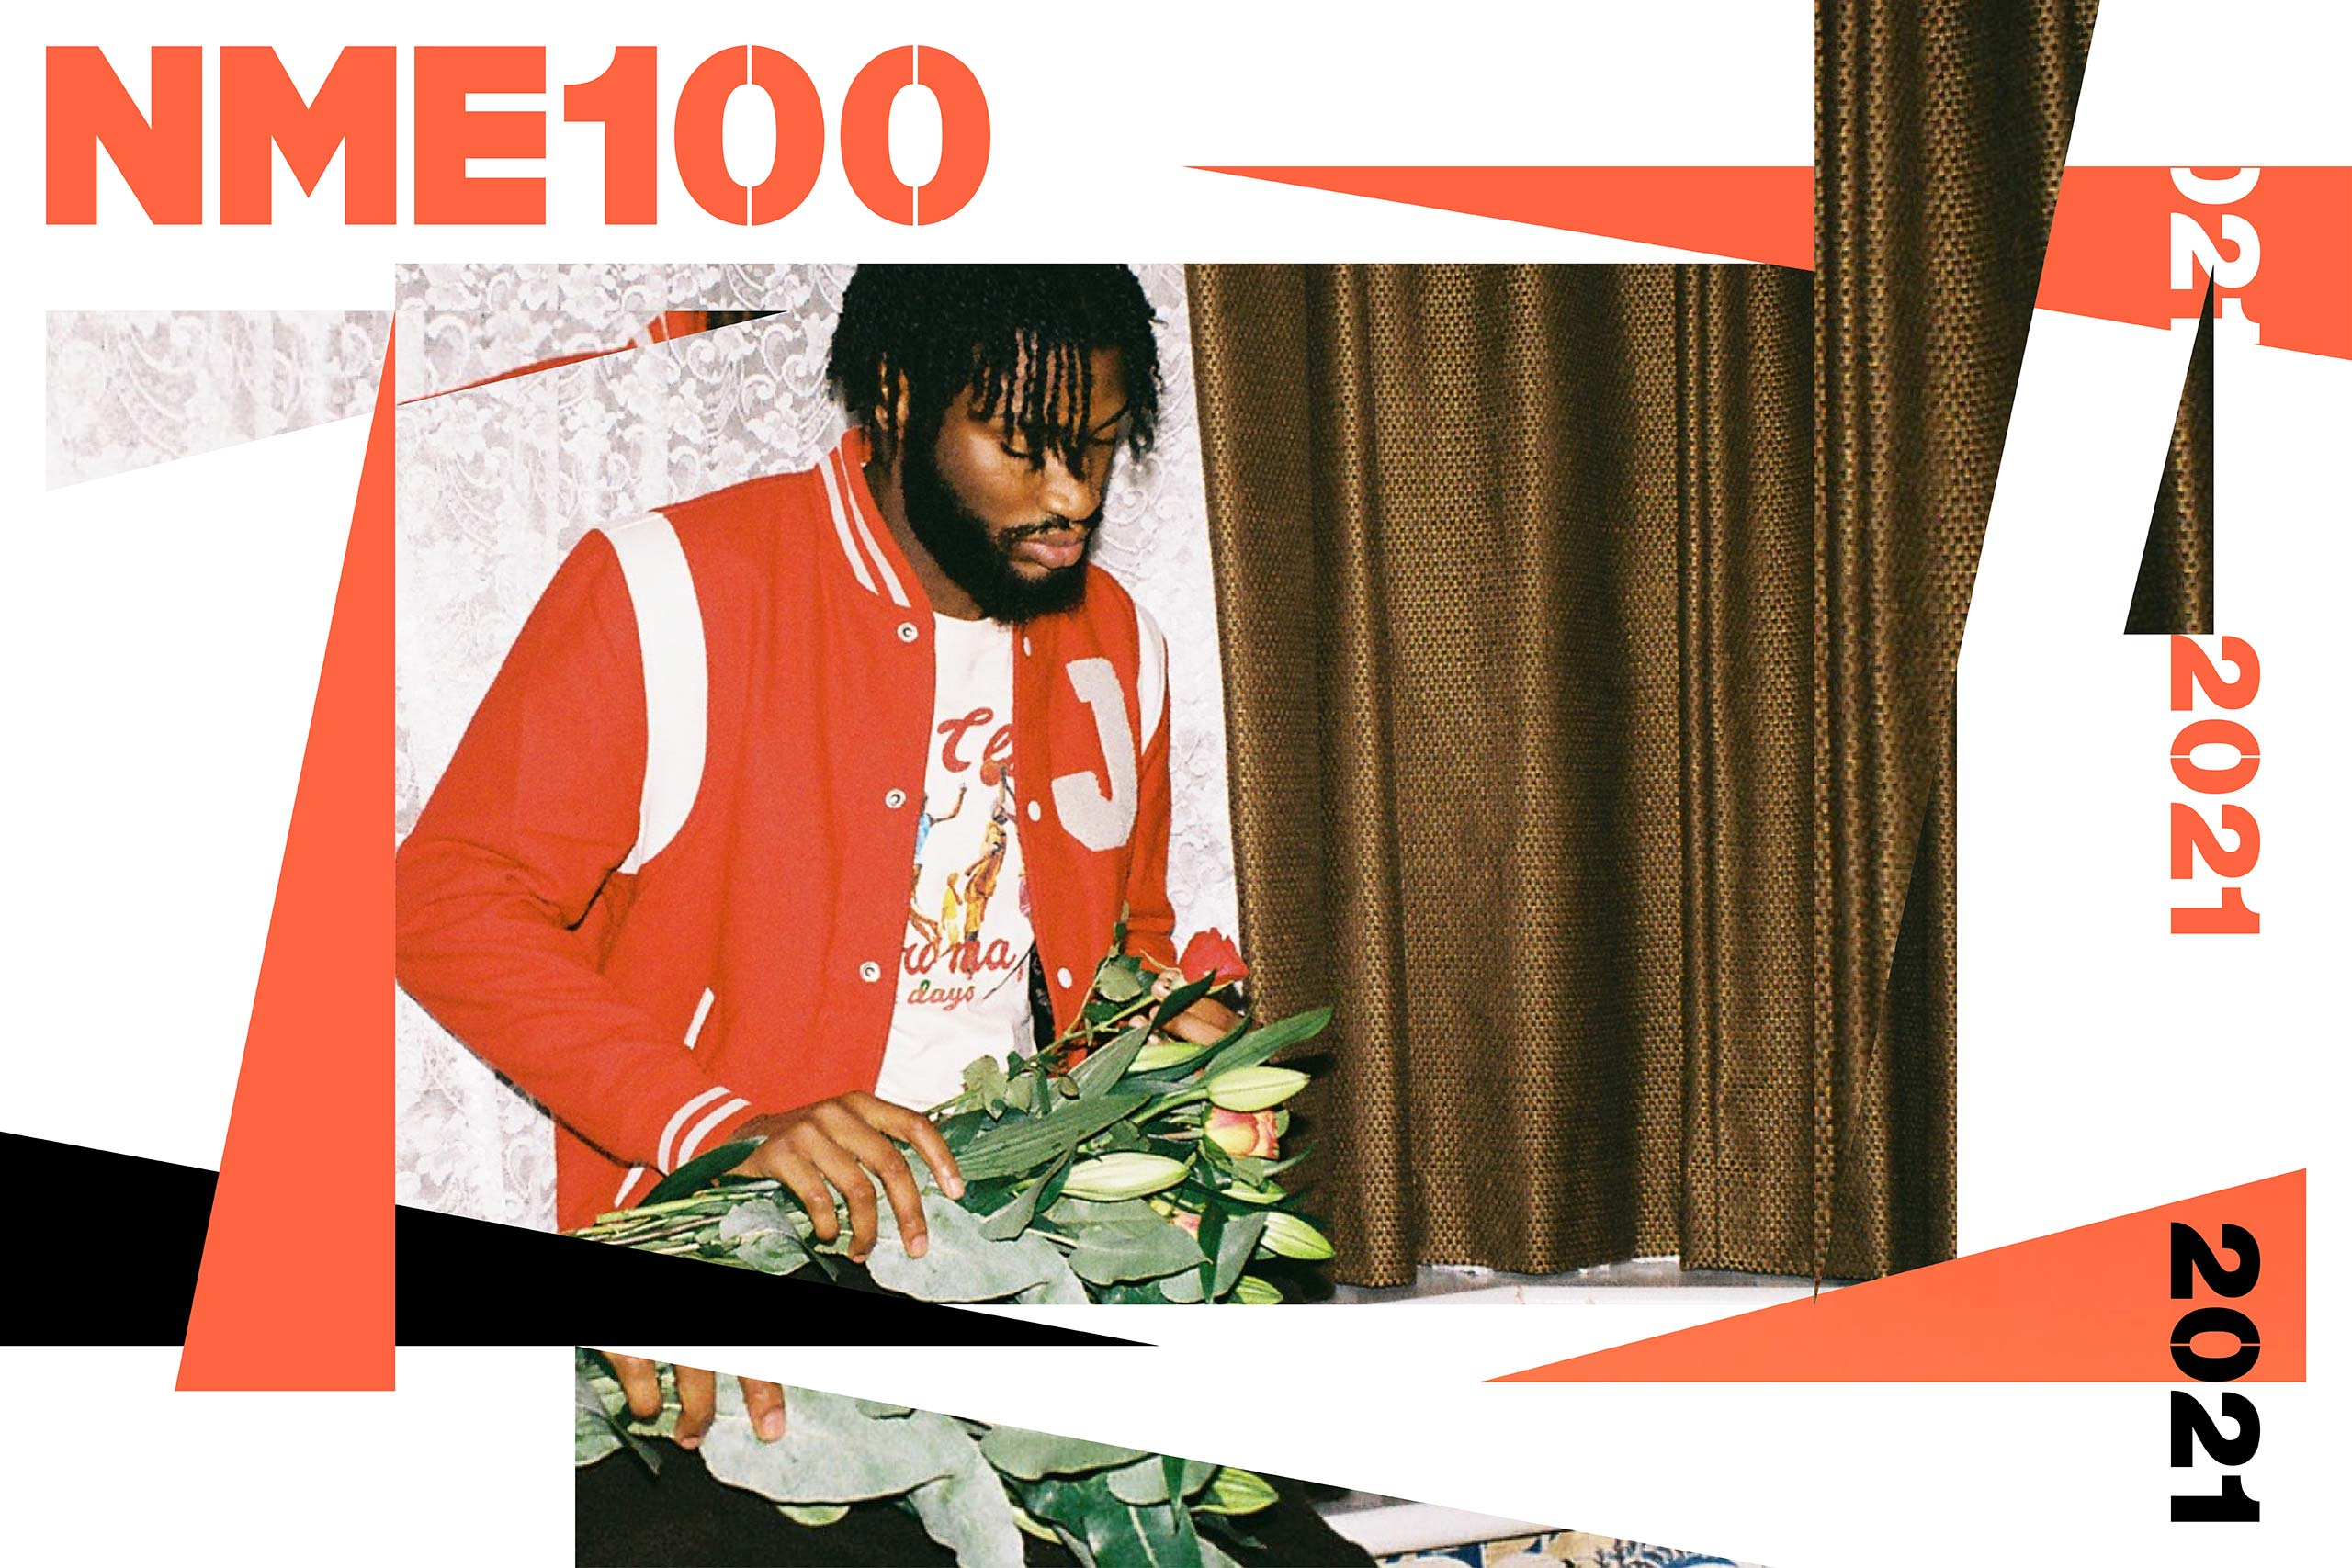 NME 100 odeal